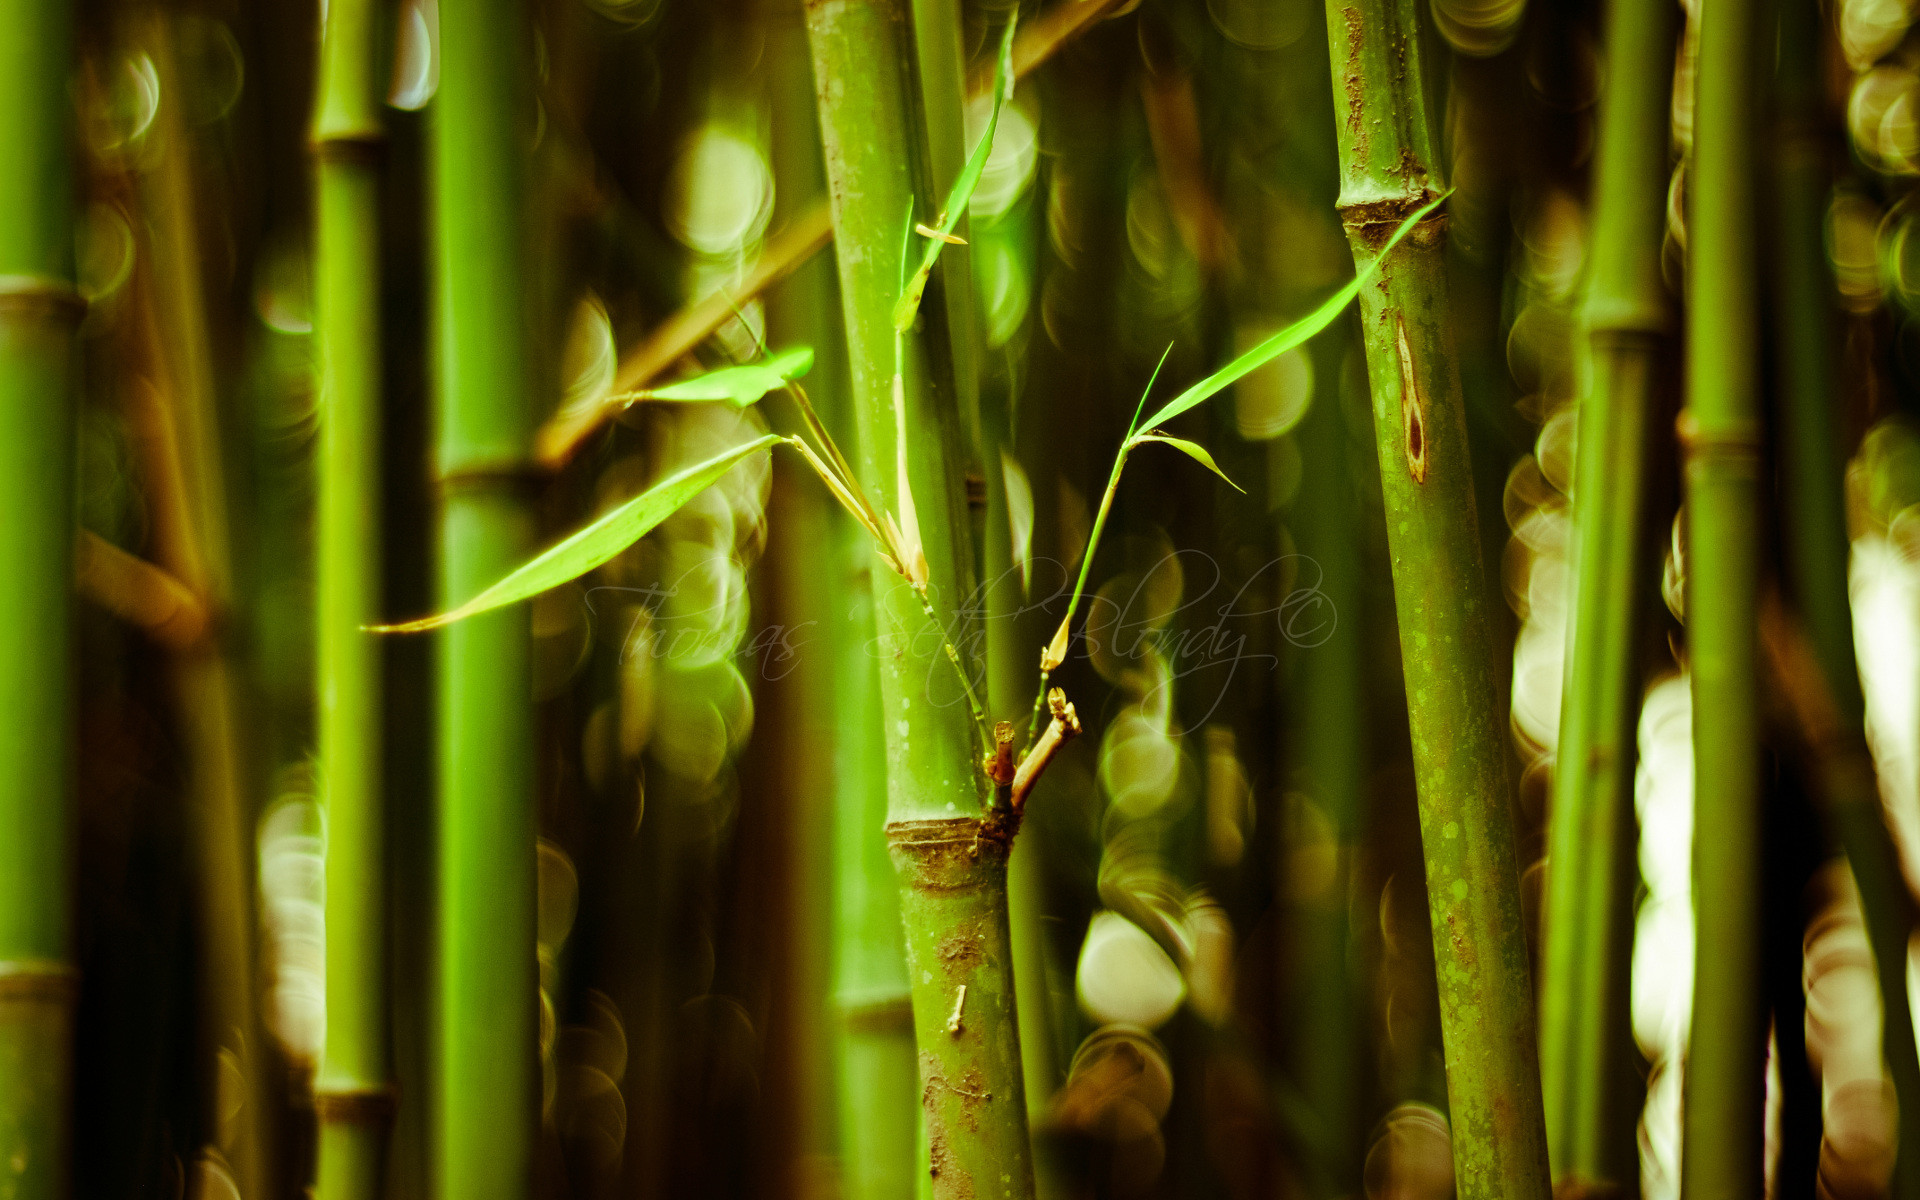 1920x1200 Download: Bamboo HD Wallpaper